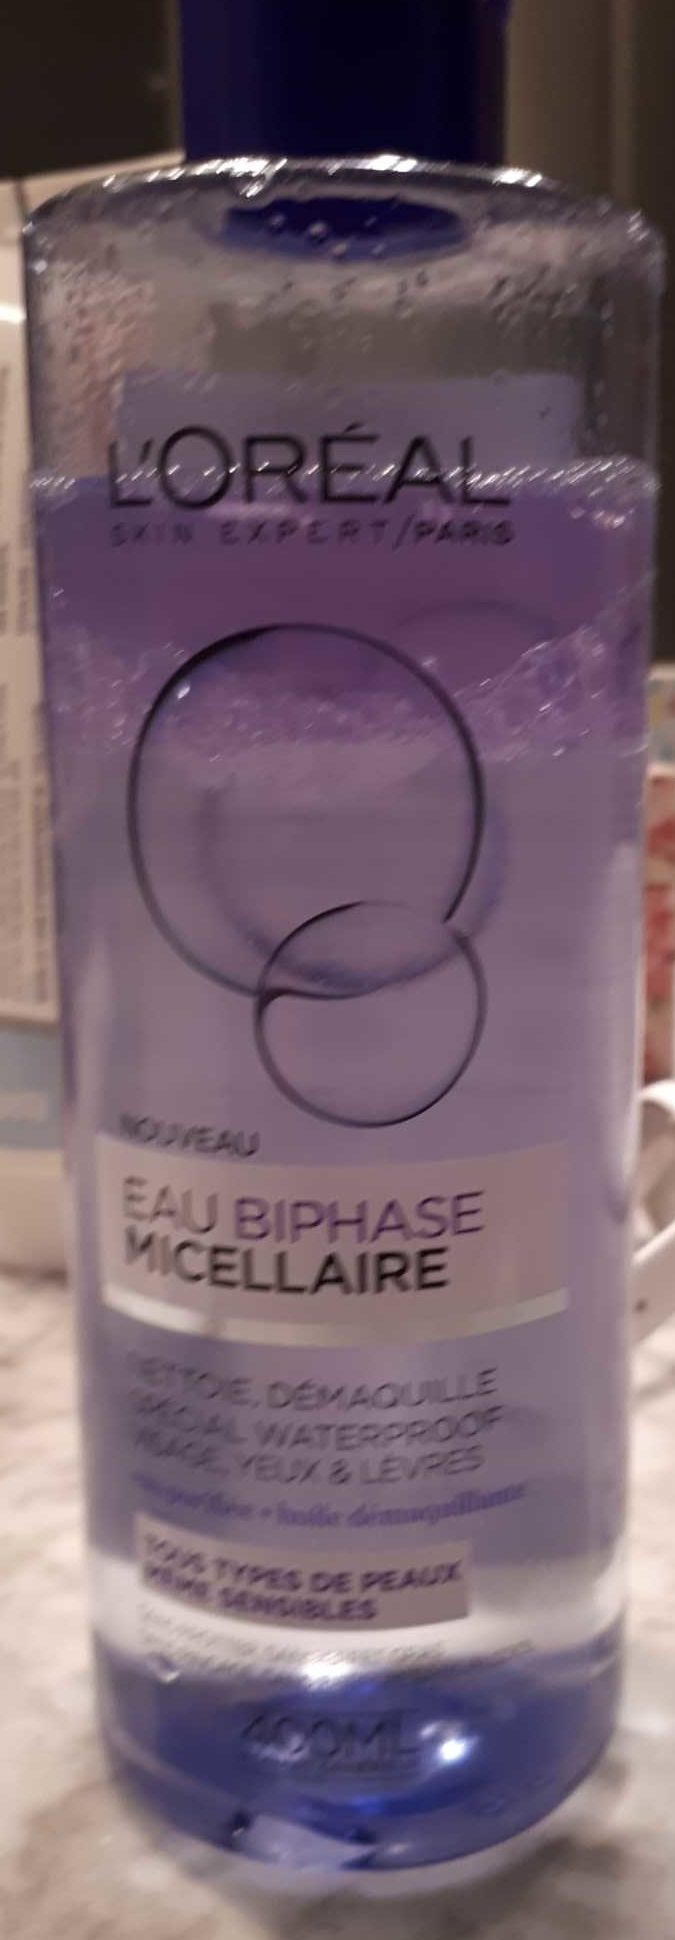 Eau biphase micellaire - Product - fr